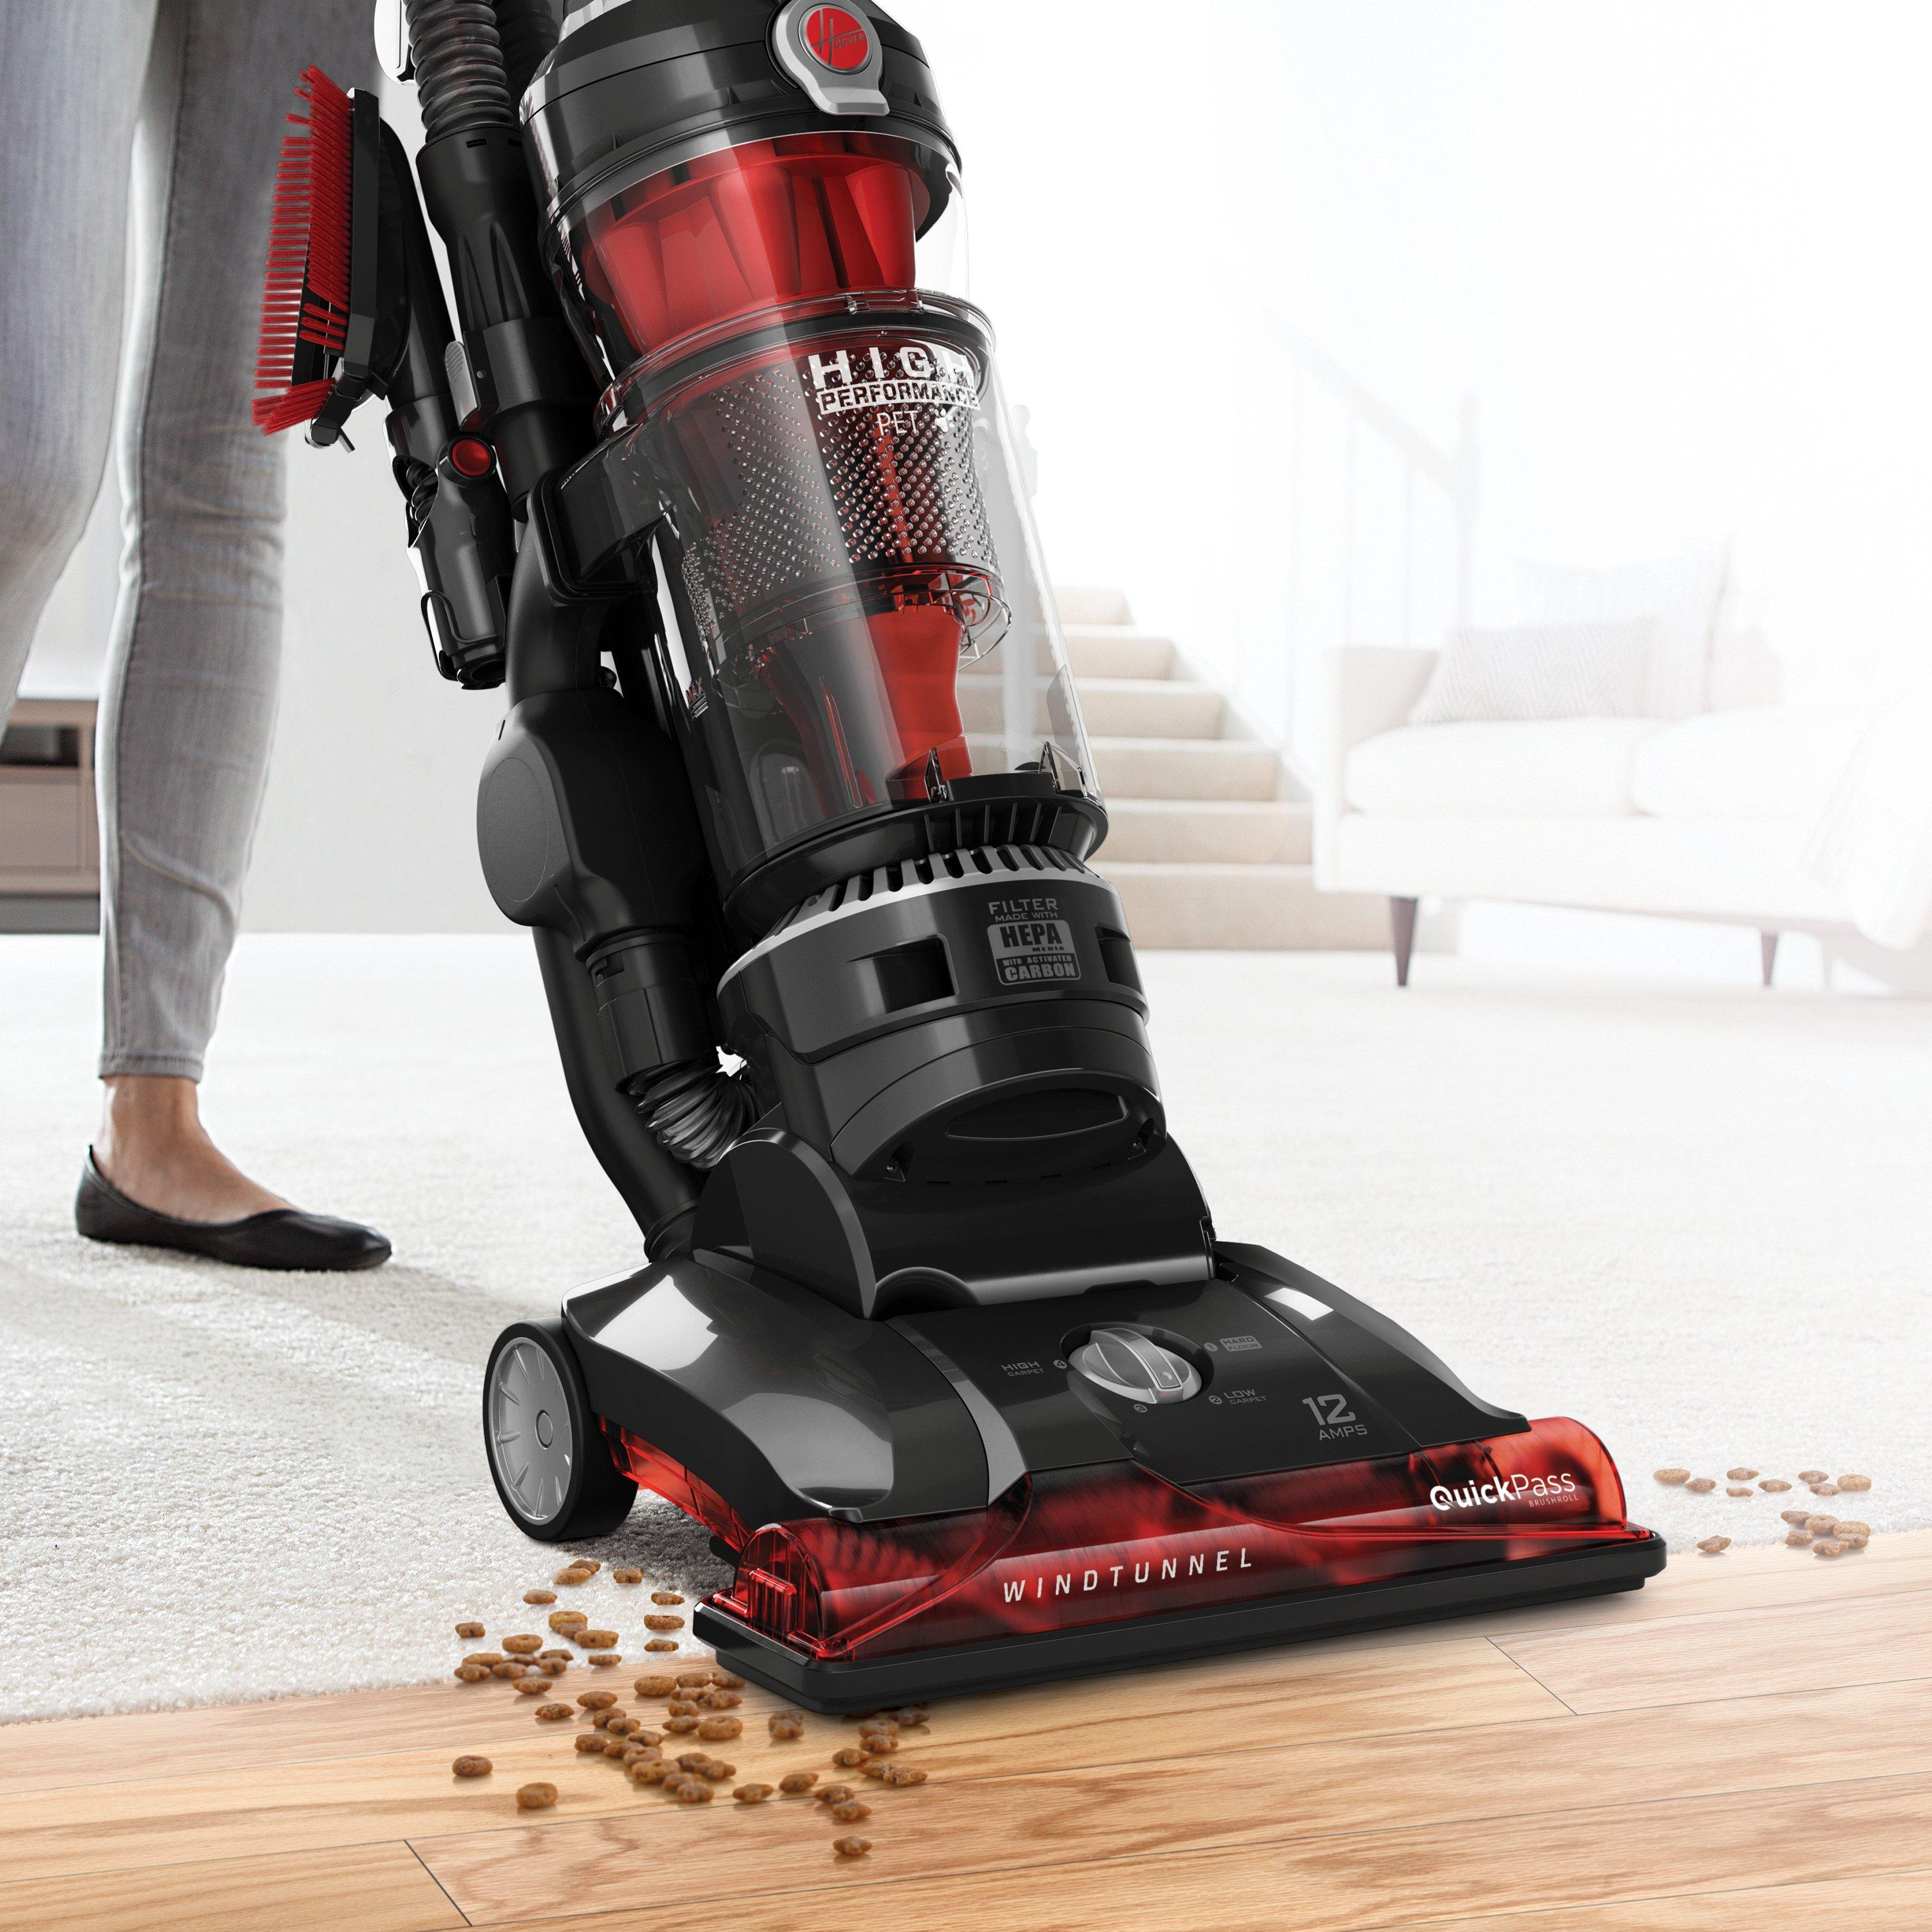 WindTunnel 3 High Performance Pet Upright Vacuum3